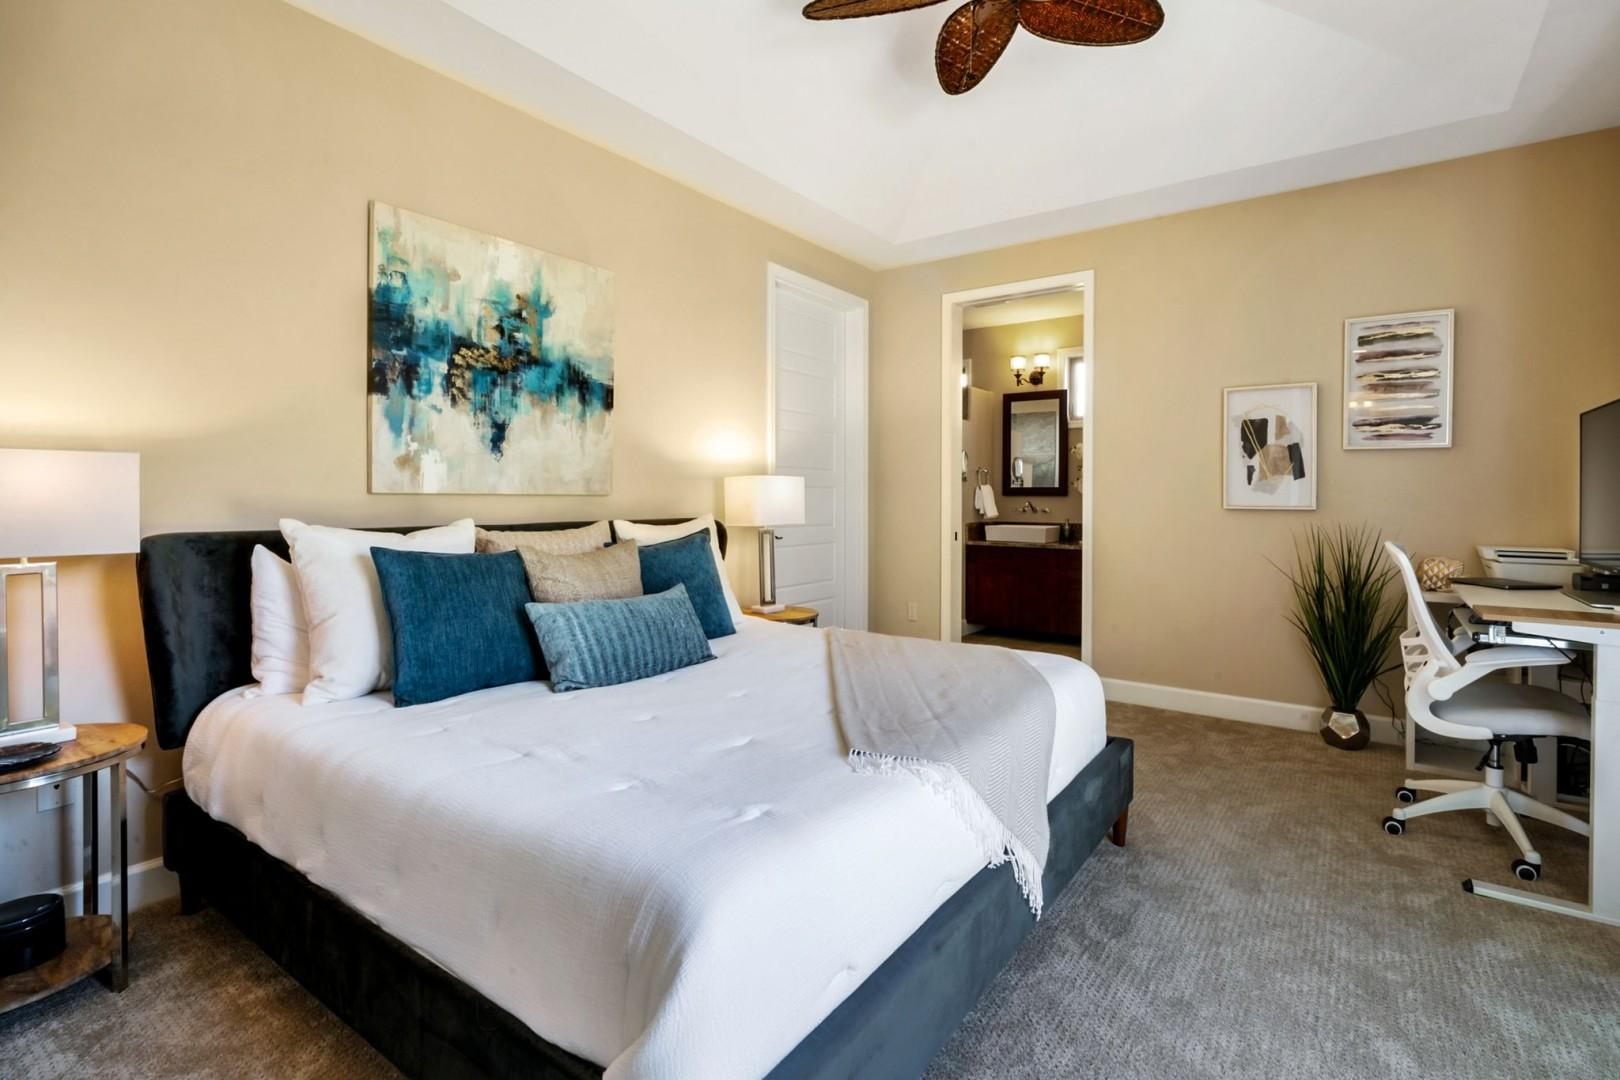 Guest bedroom equipped with King bed, A/C, TV, Lanai access, and work space